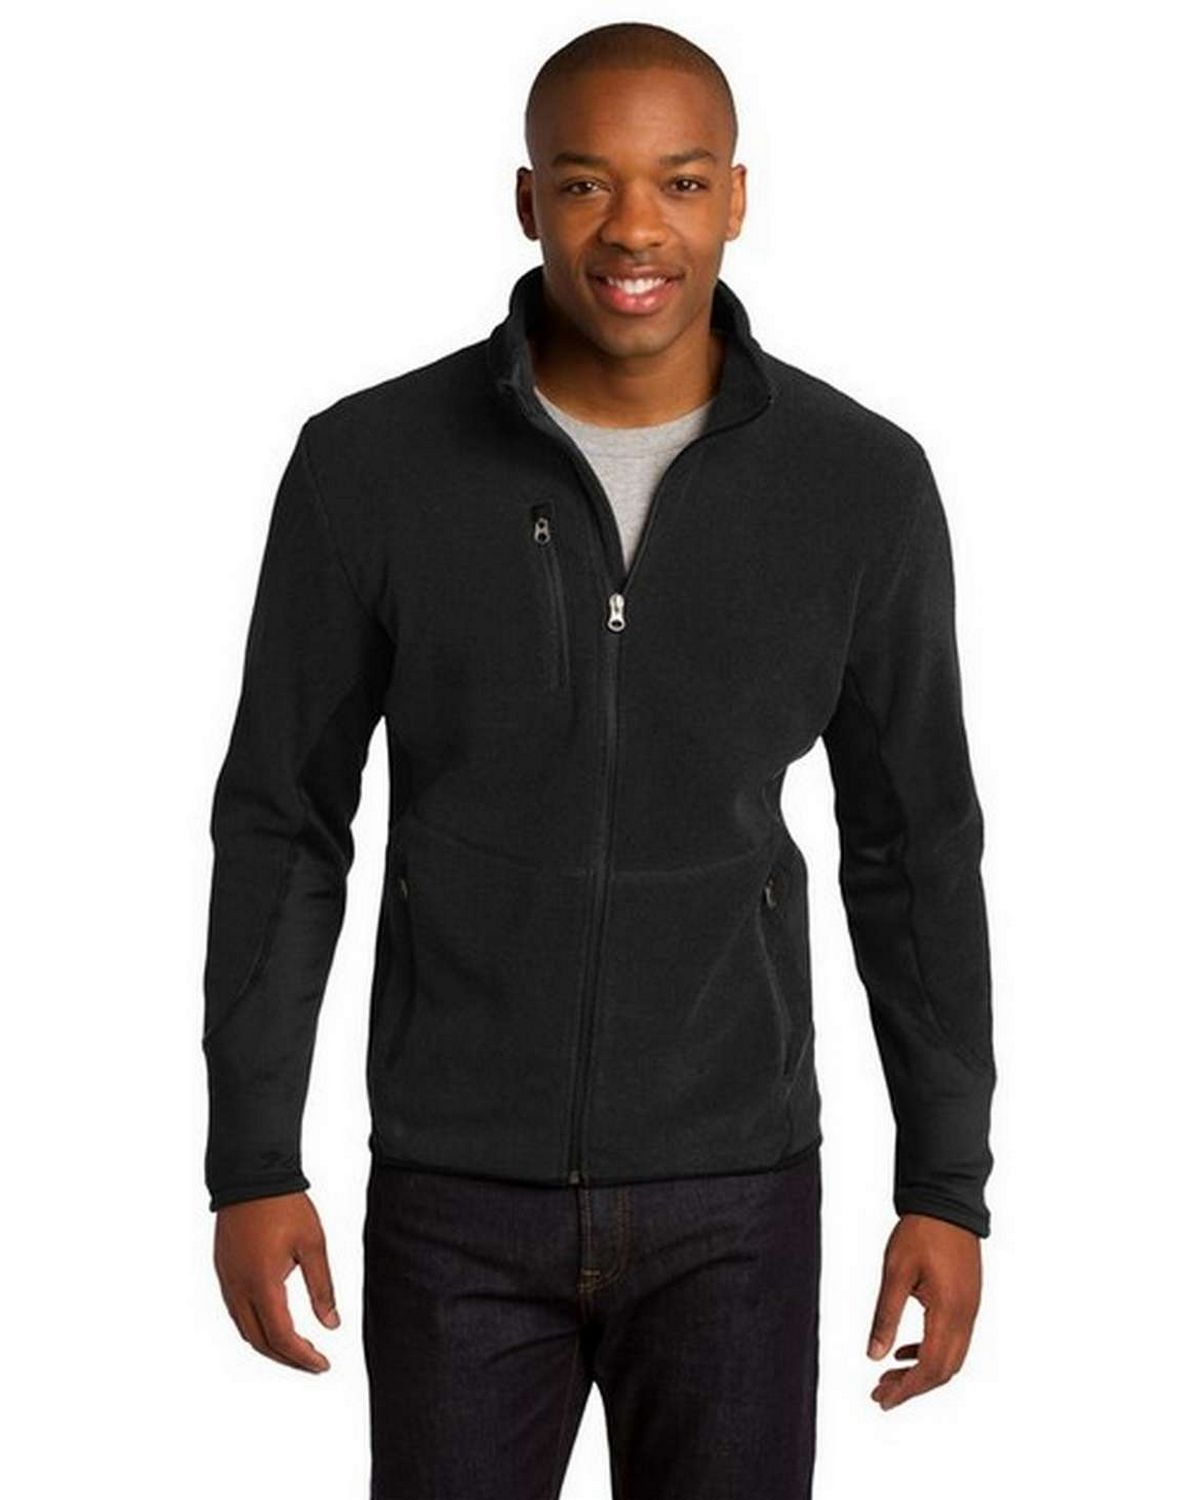 Port Authority F227 R-Tek Pro Fleece Full-Zip Jacket